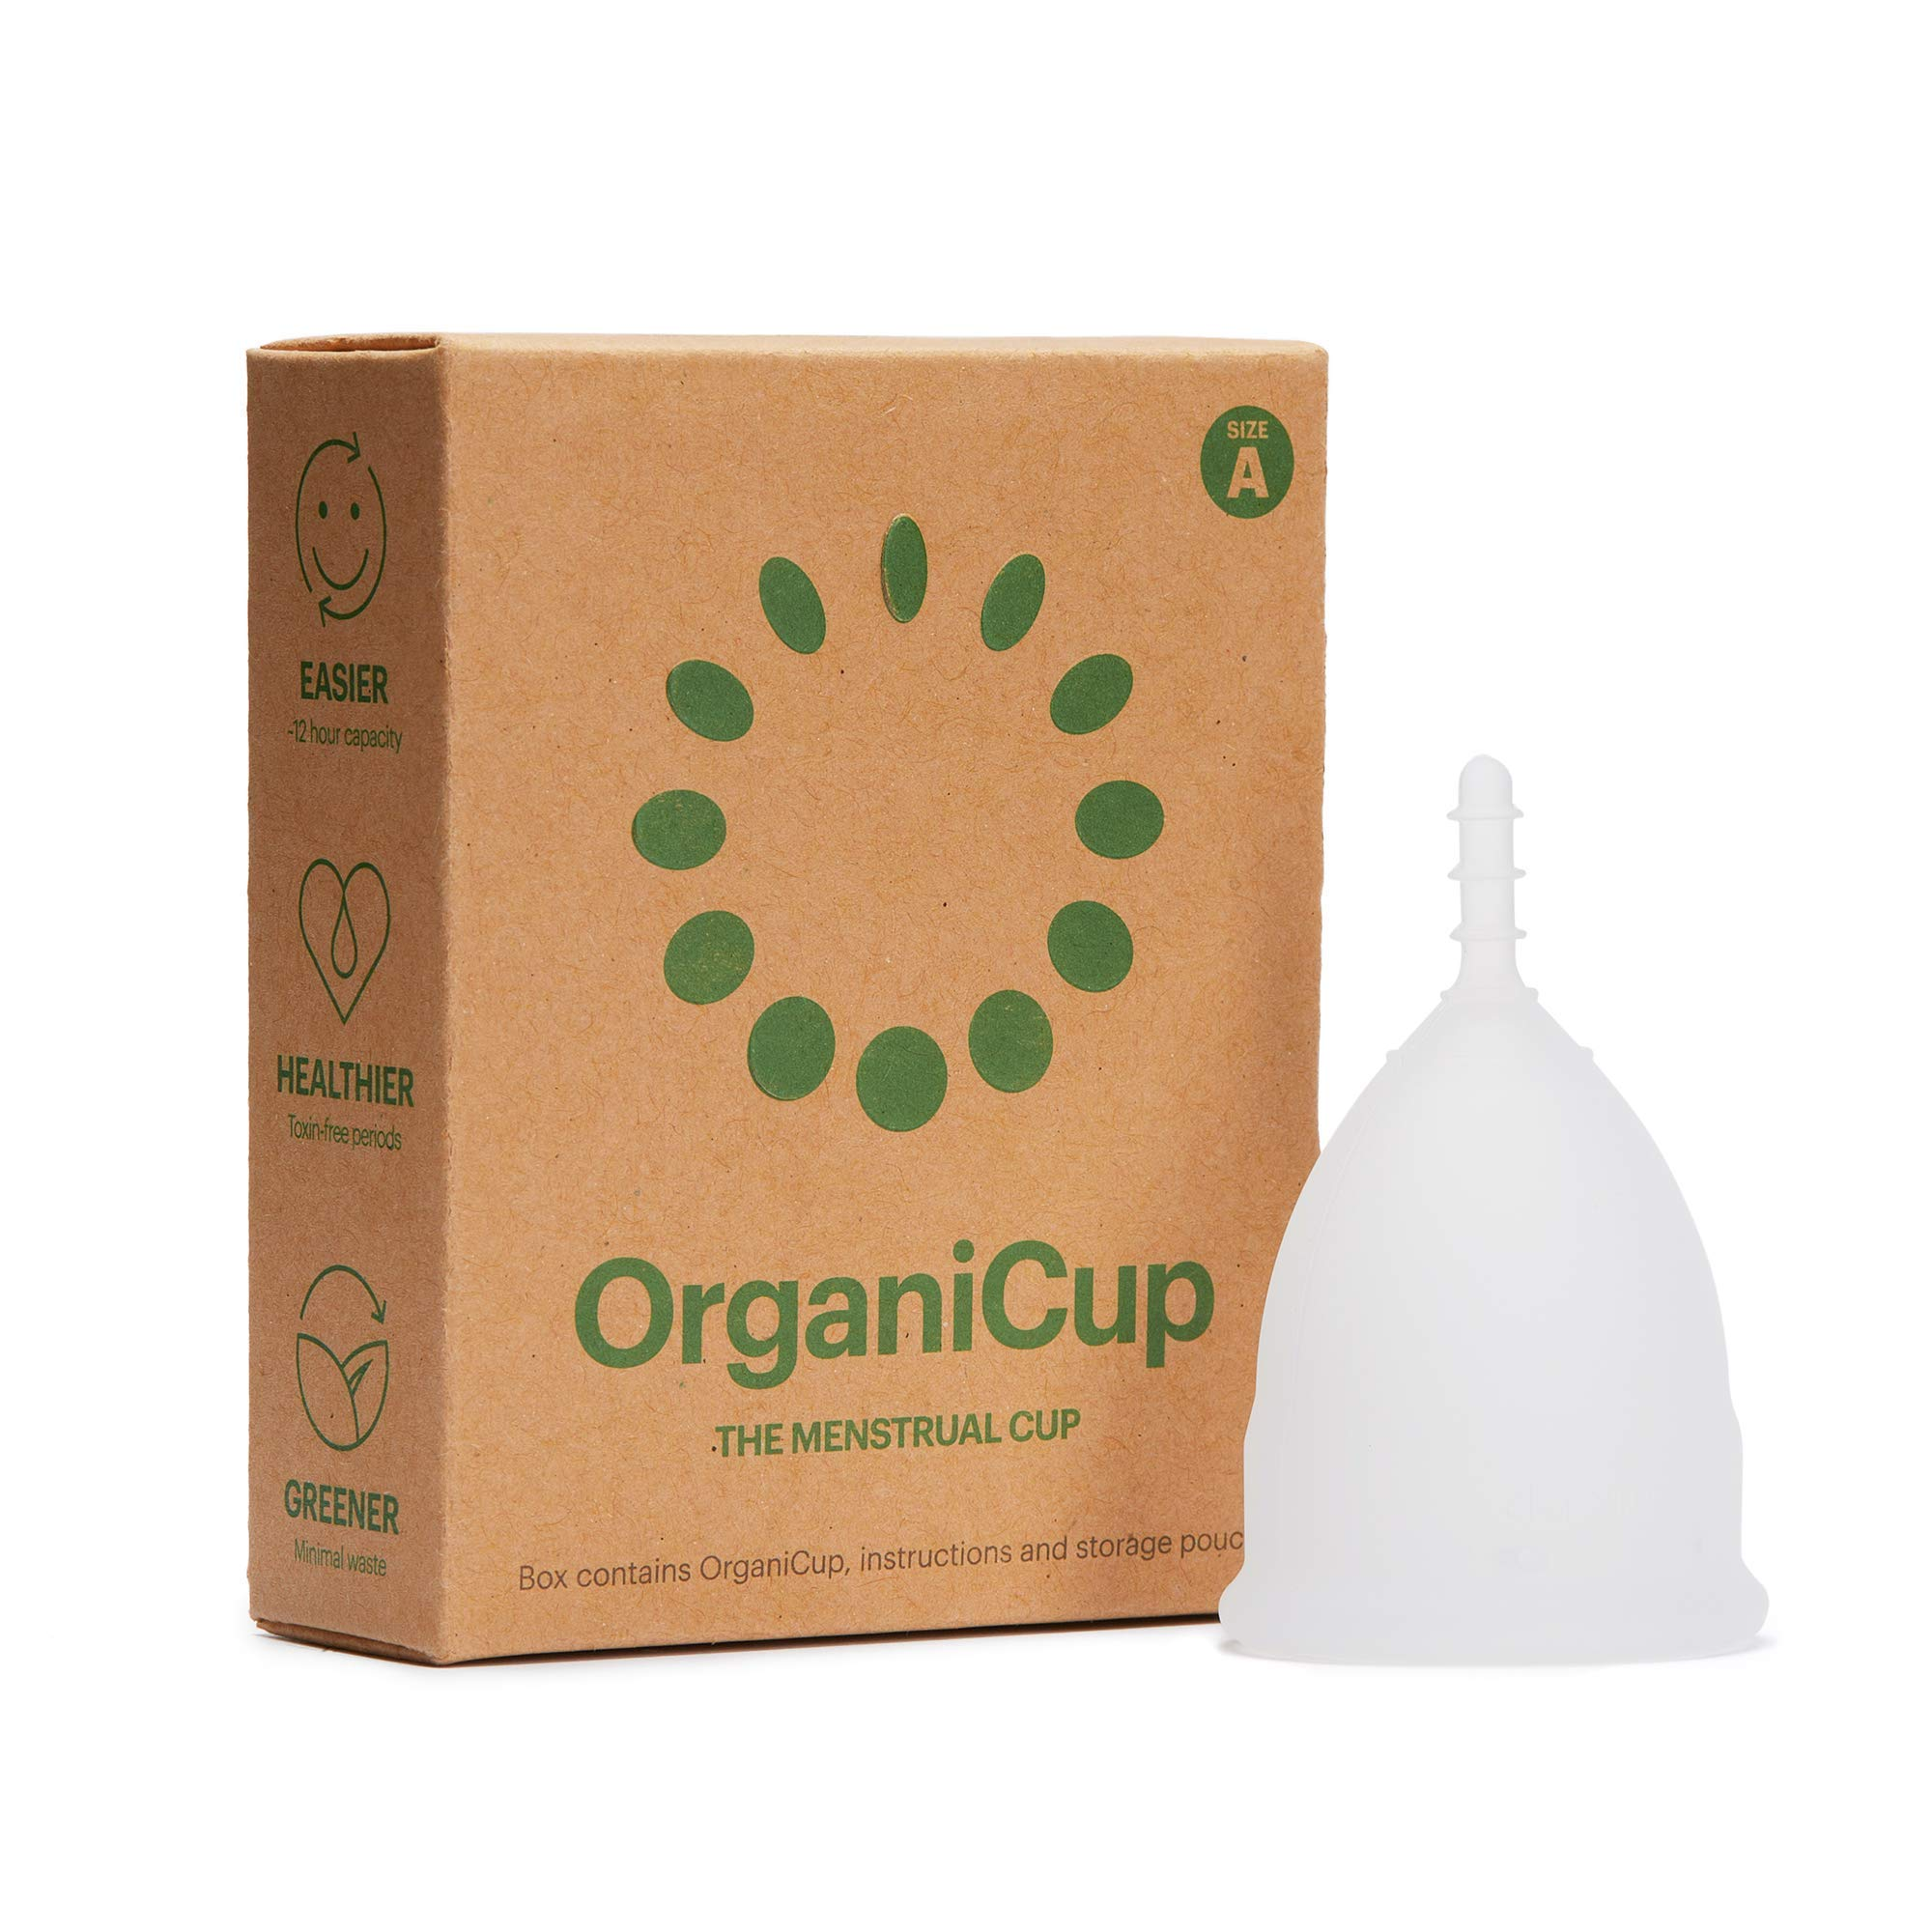 OrganiCup Menstrual Cup Size A. for Those Who Haven't Given Birth Vaginally. Award Winning Period Cup. Allergy Certified